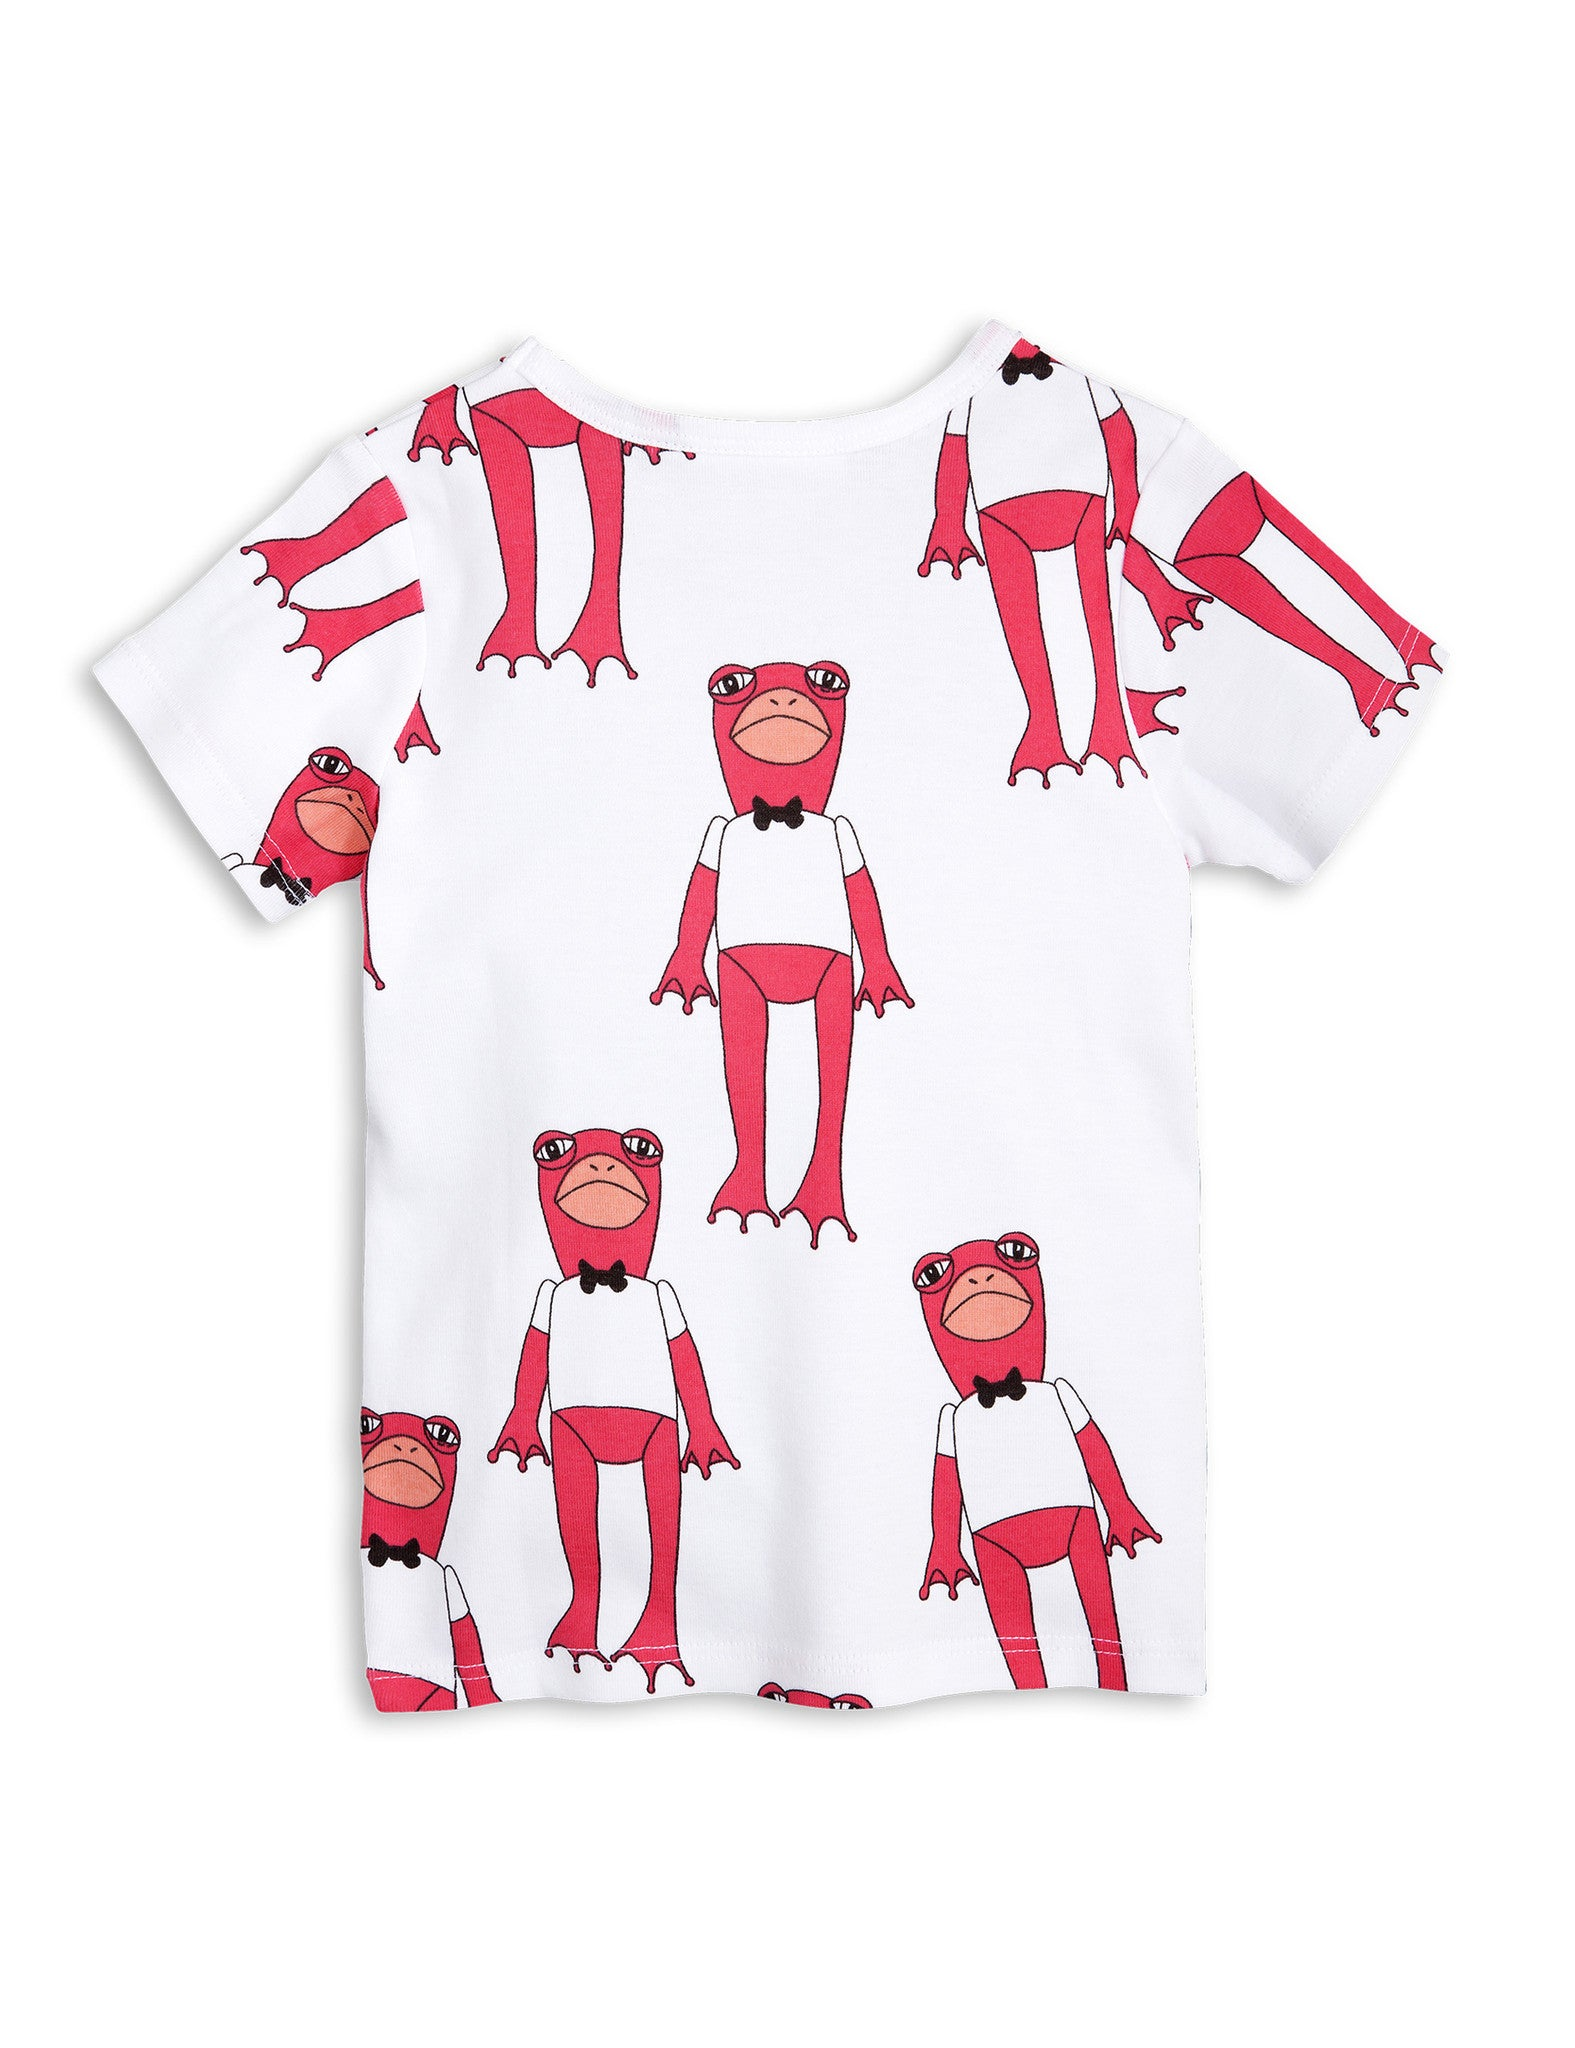 Mini Rodini | Frog Tee - Cerise | The Mini Rodini